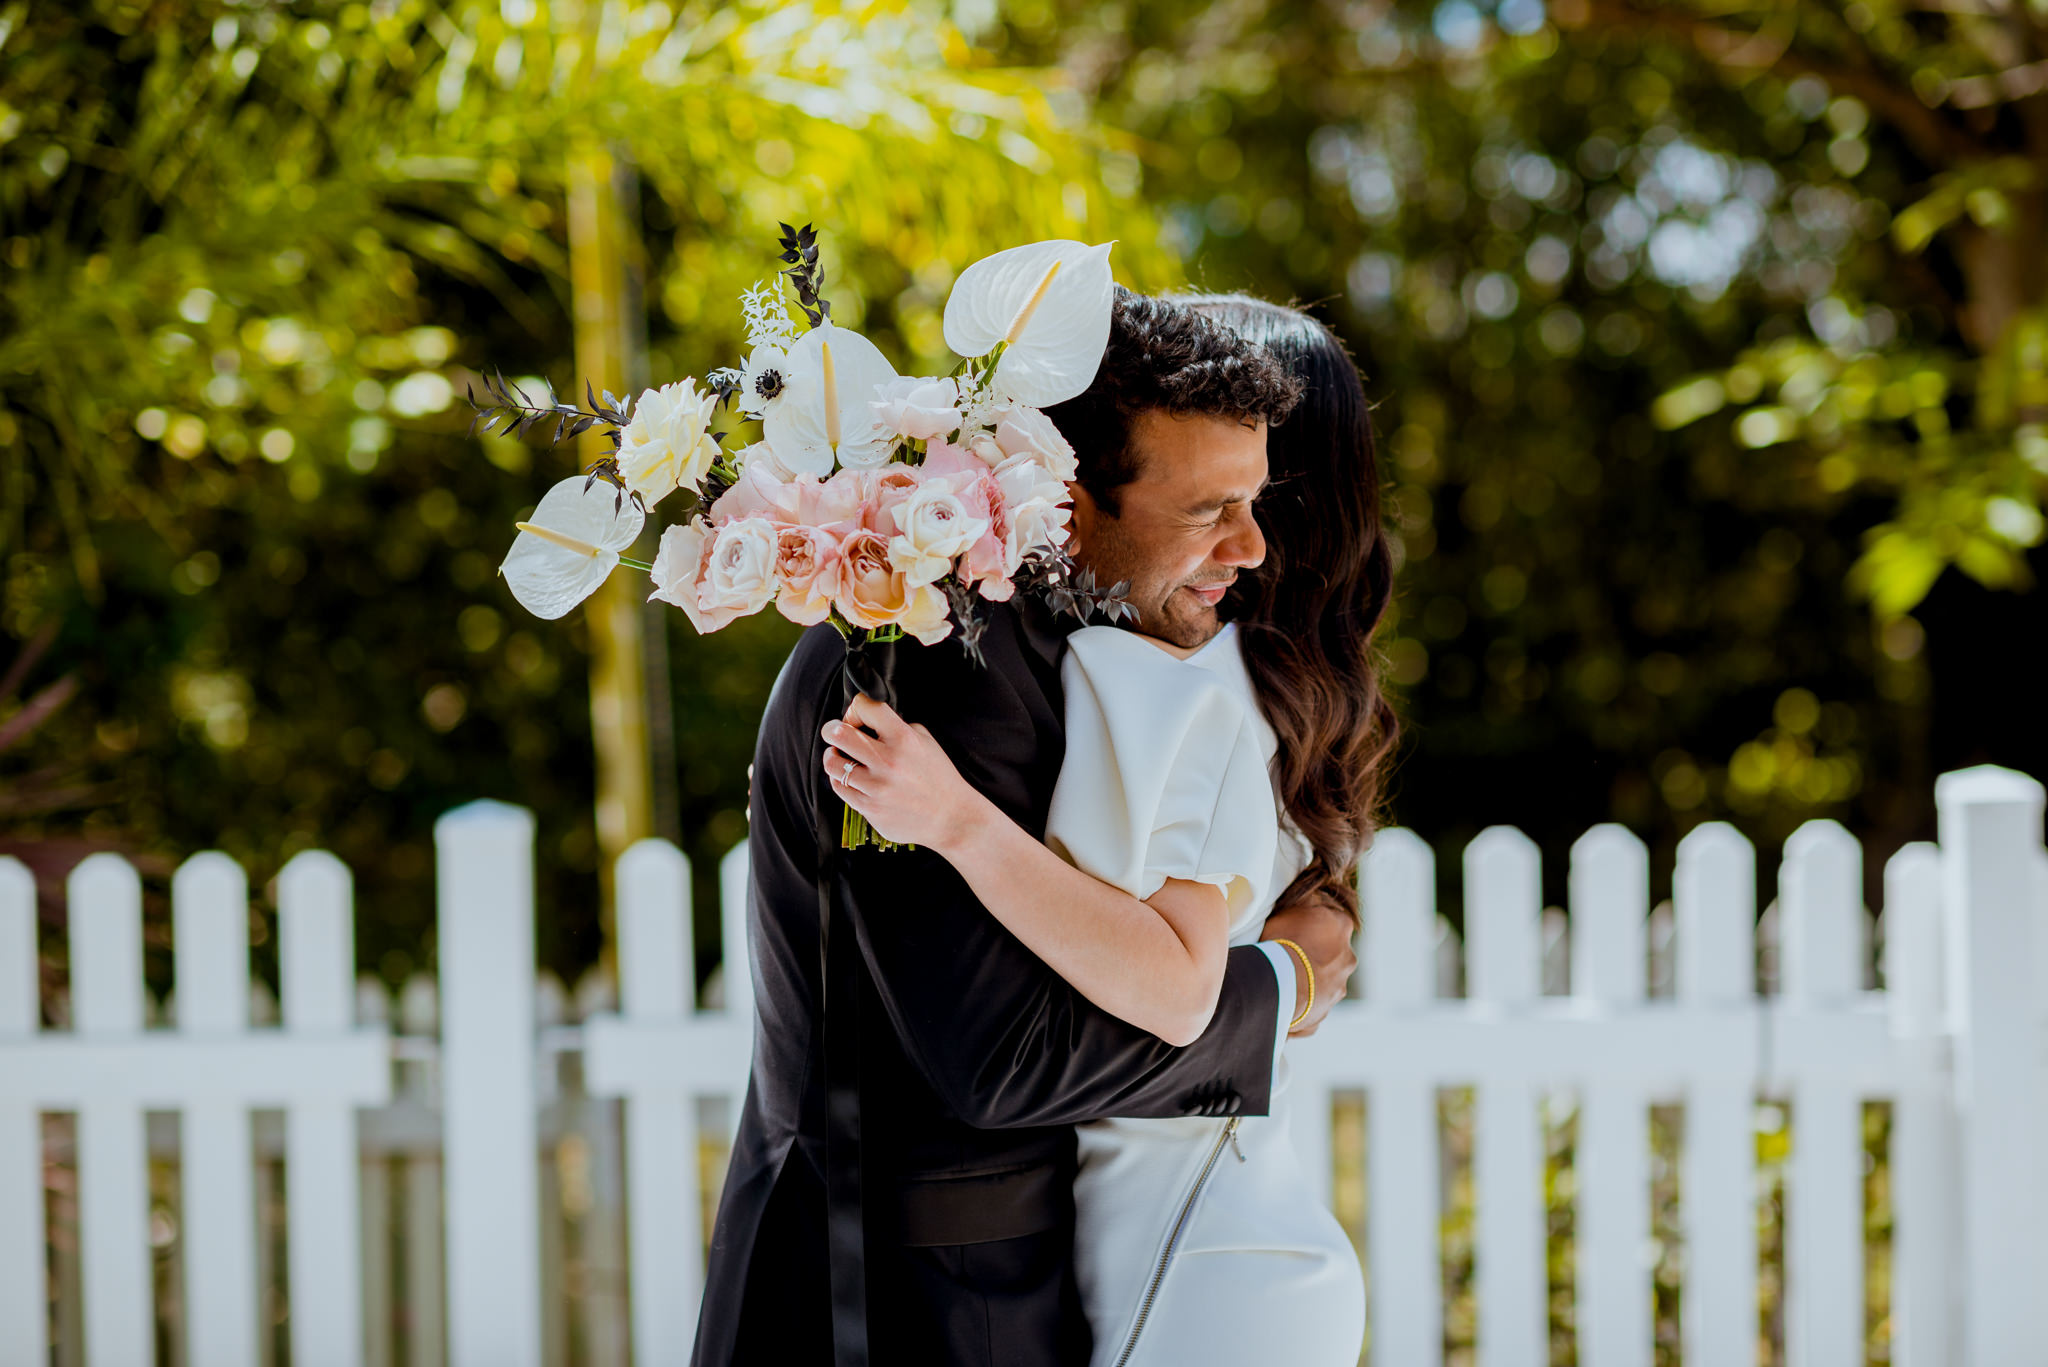 Groom in tears as he hugs his bride in front of a white picket fence